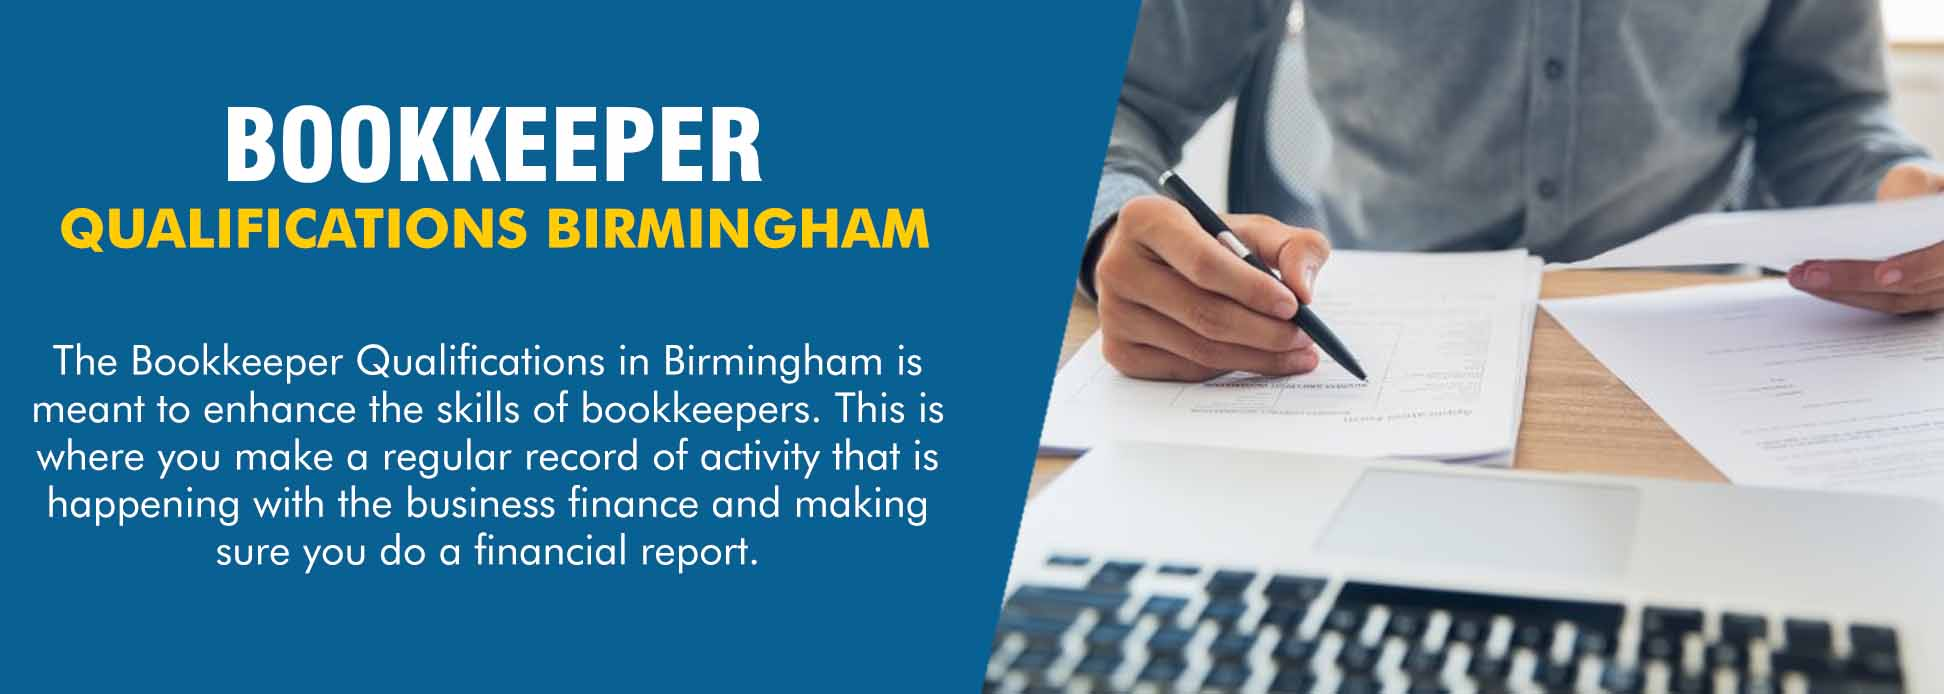 bookkeeping-qualification-birmingham